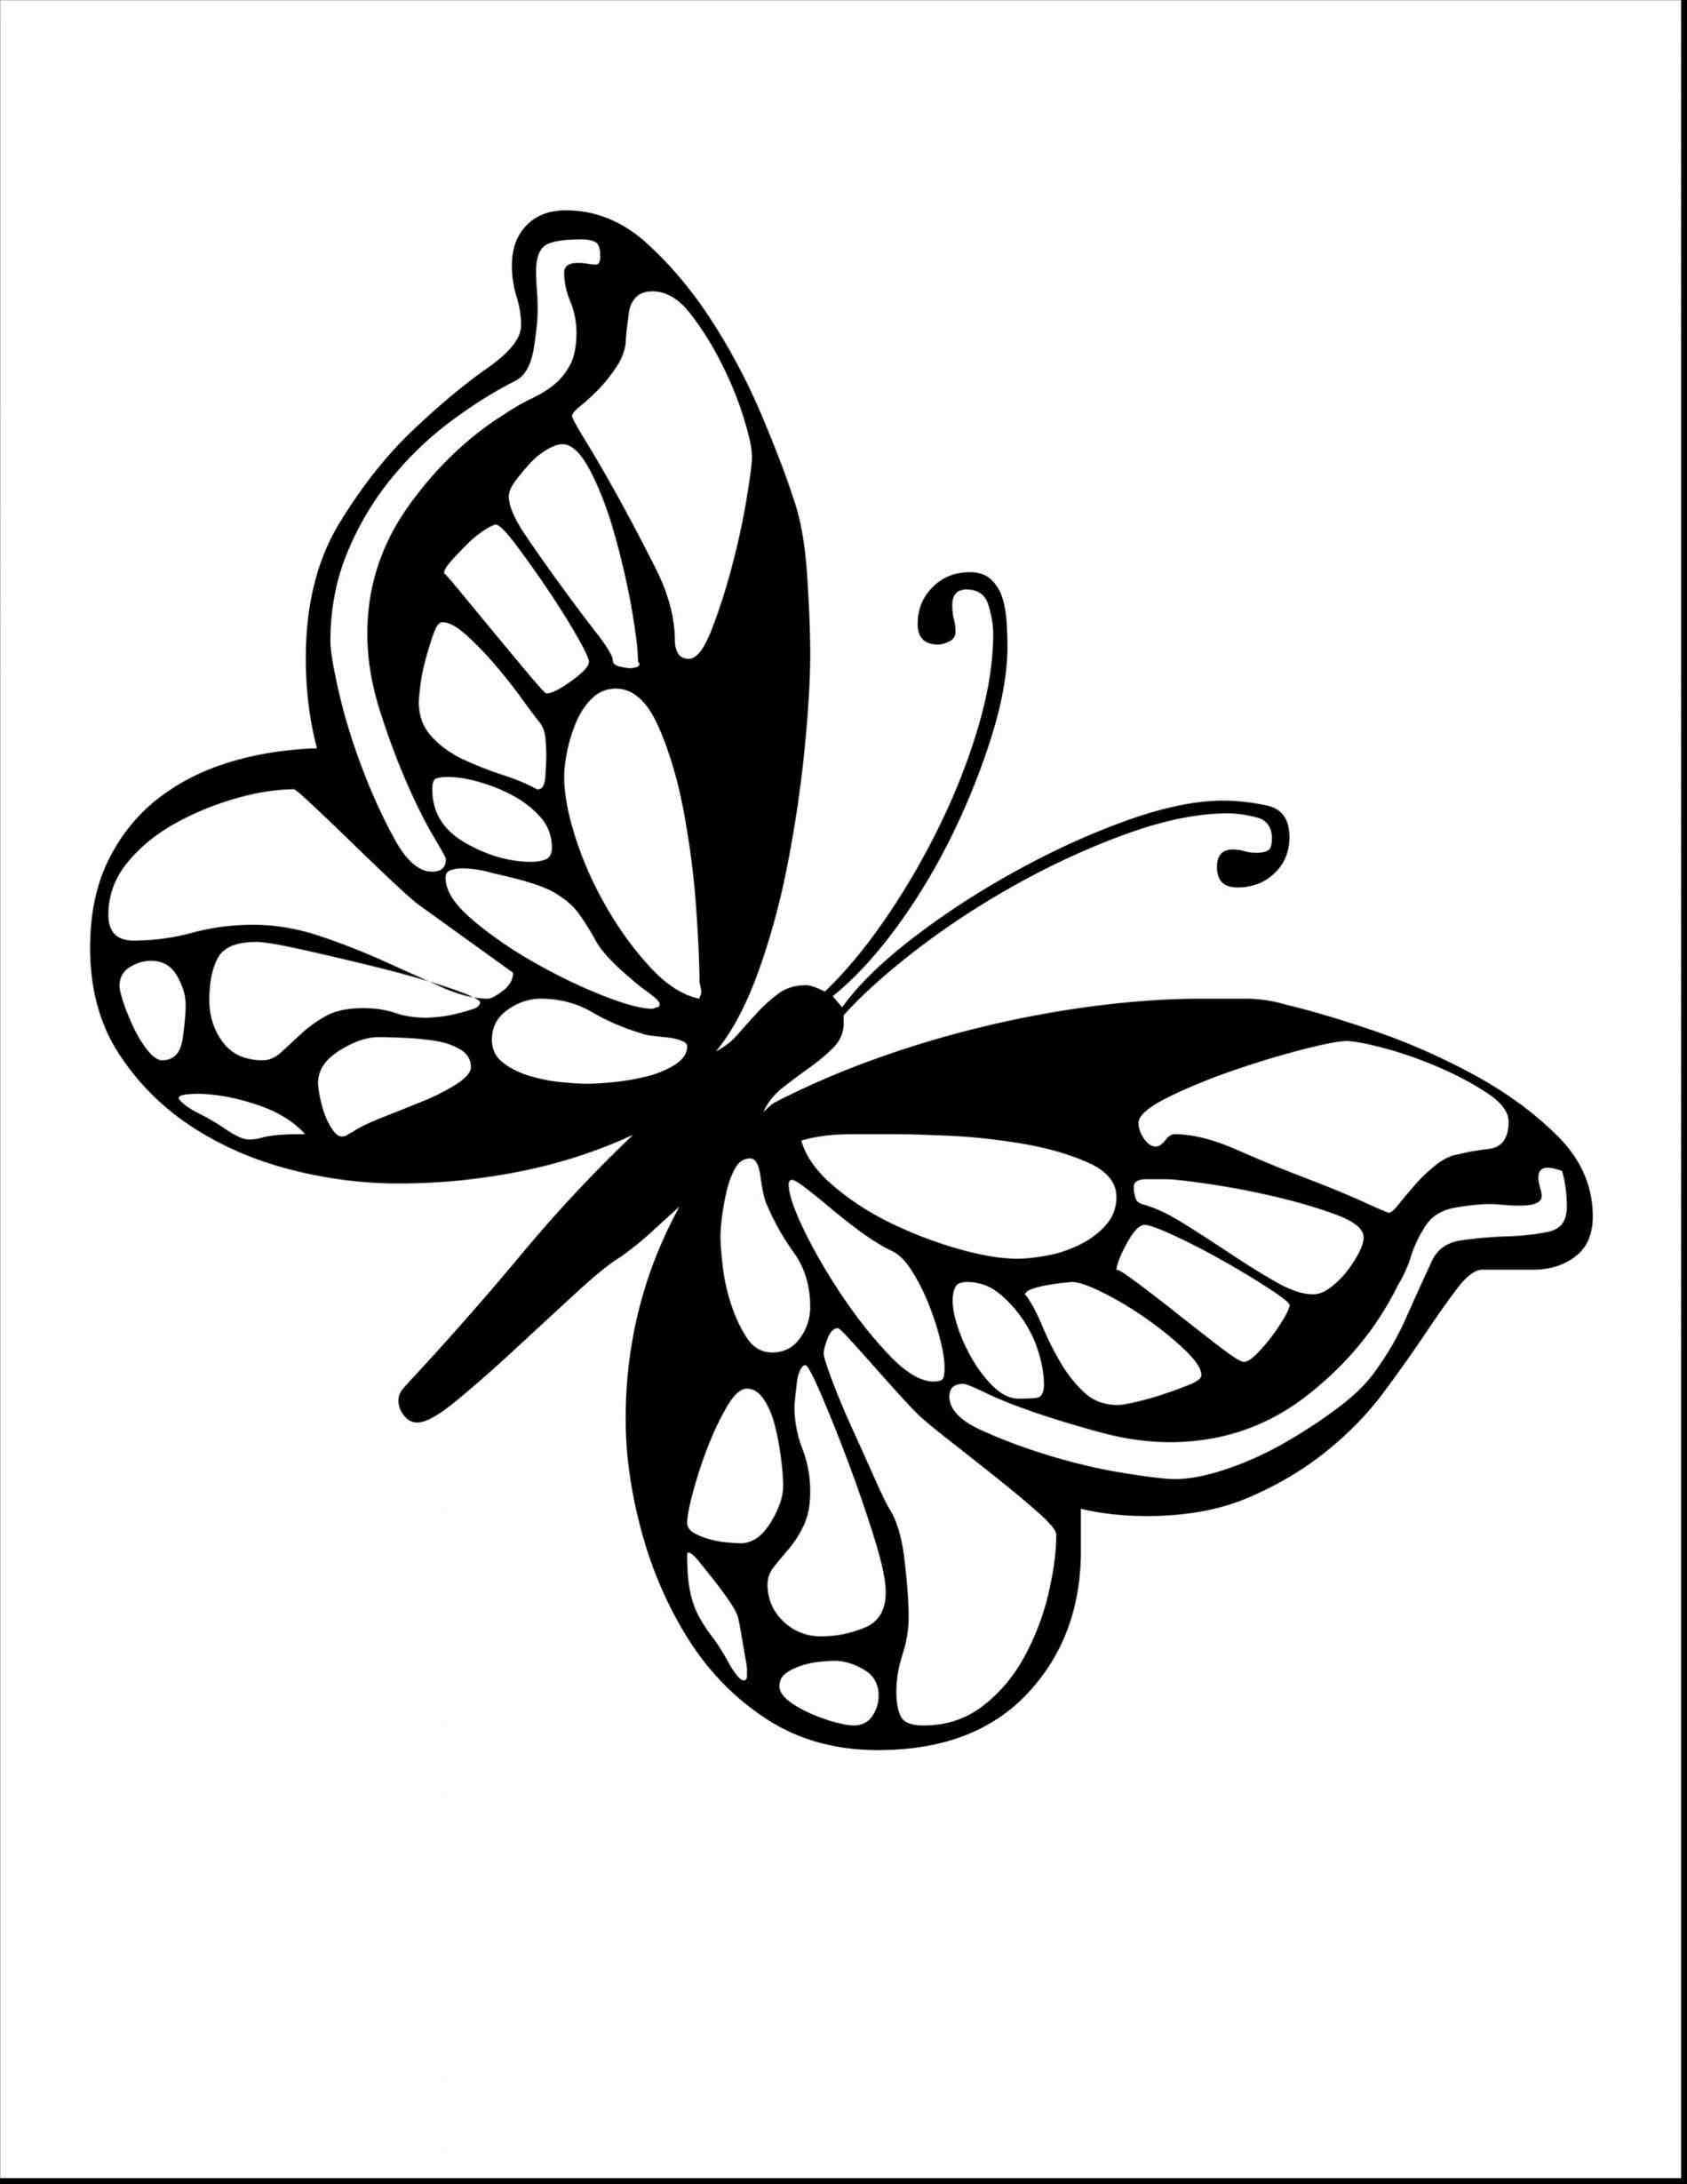 Wings Line Drawing | Free download on ClipArtMag